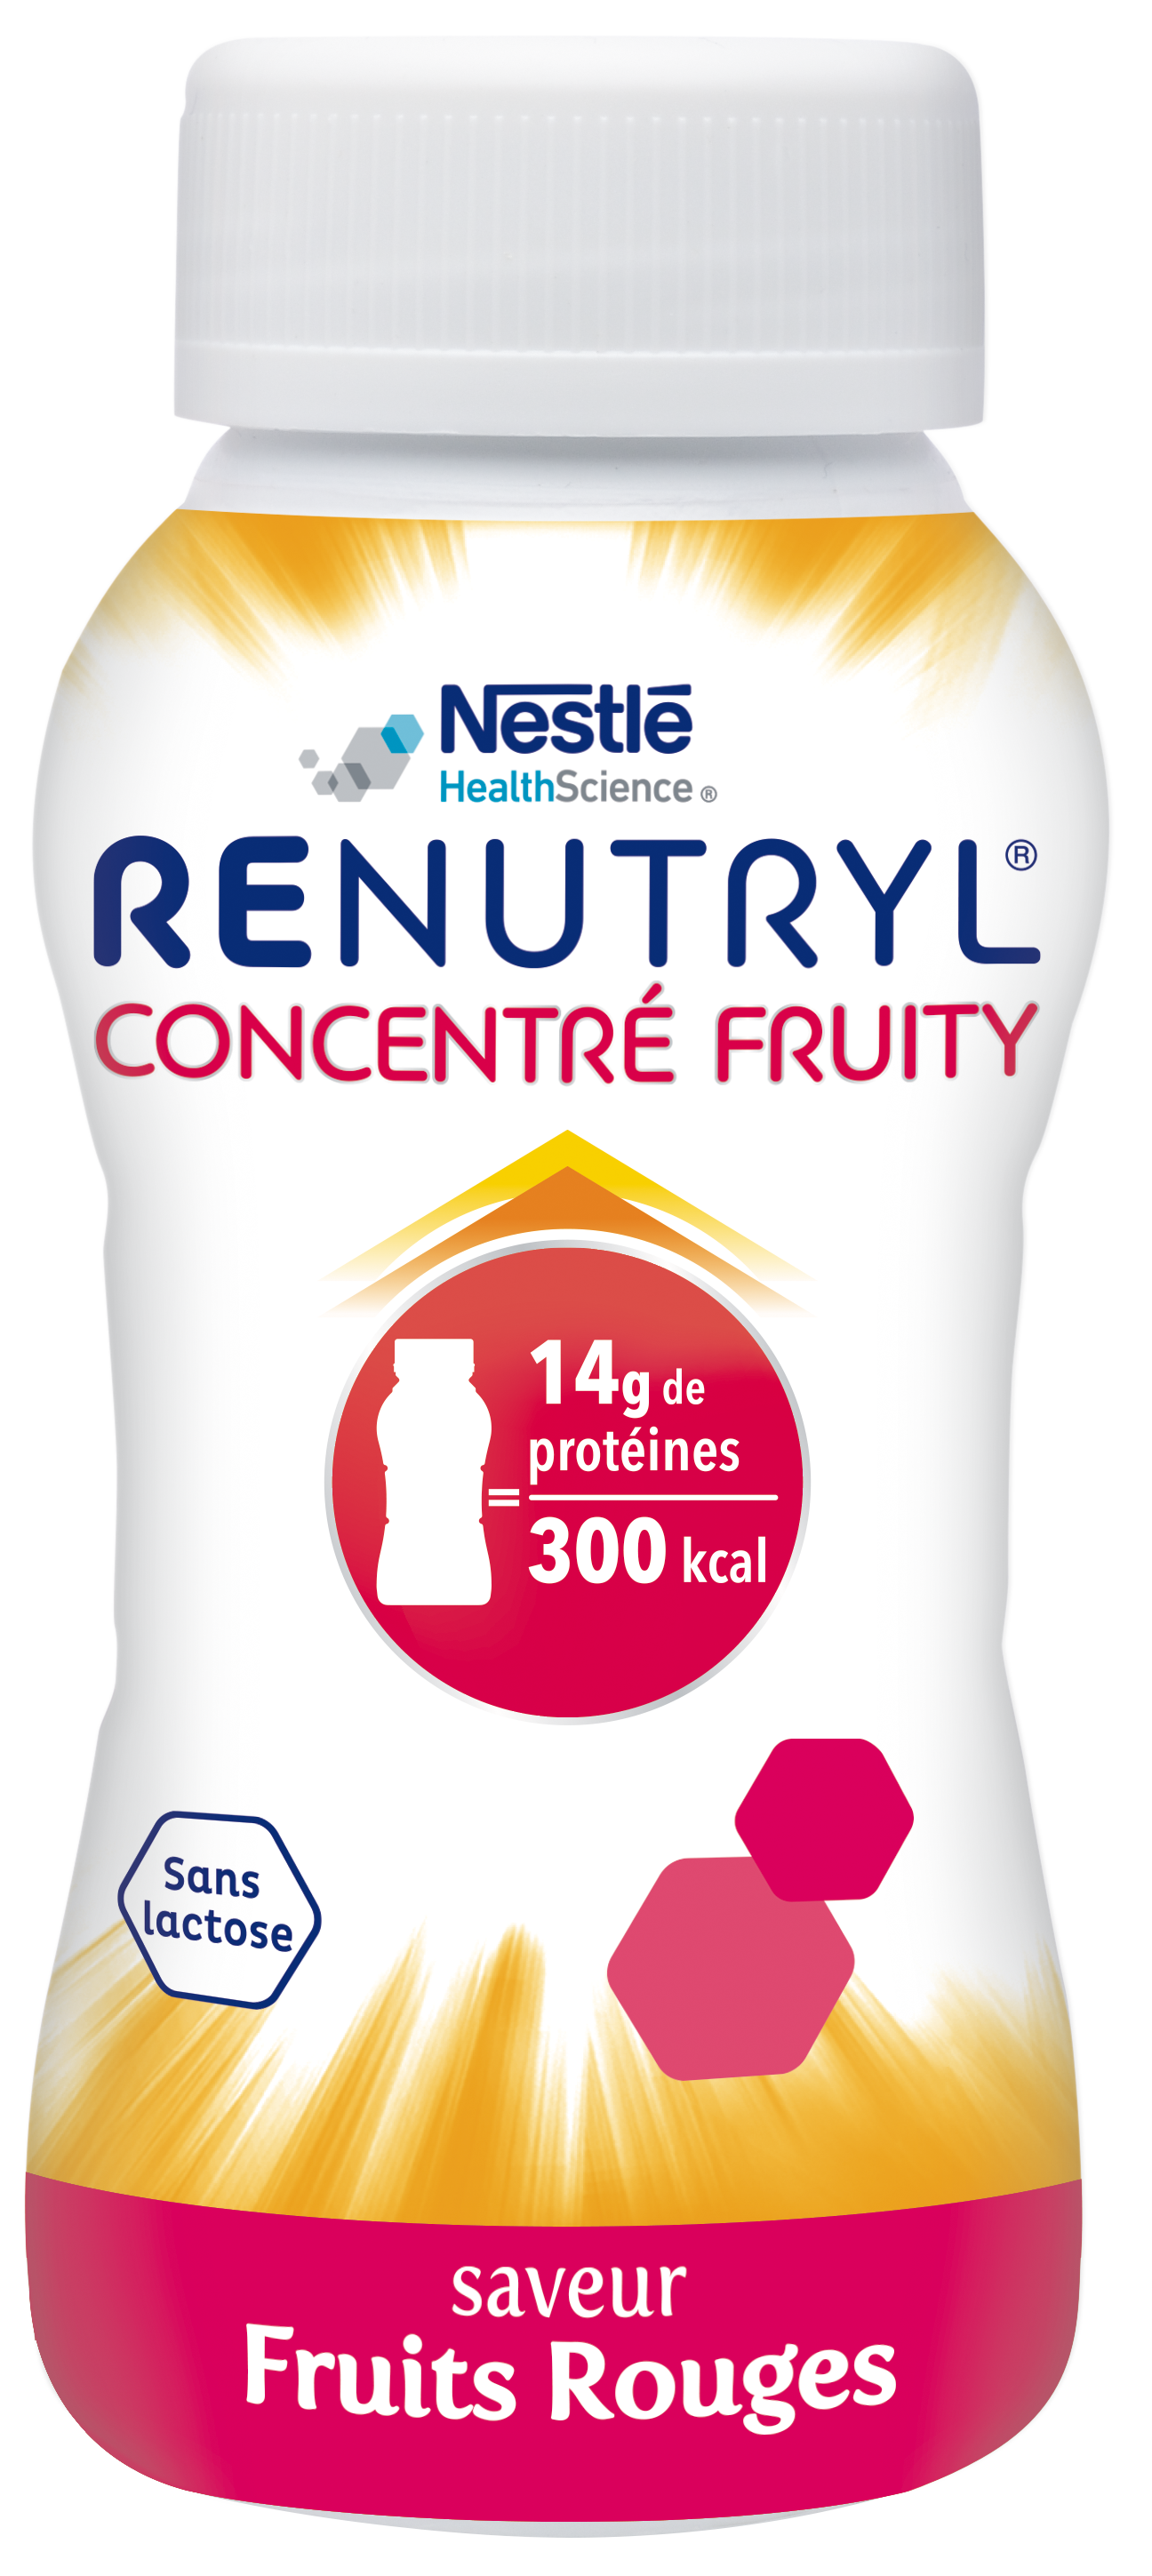 Renutryl Concentré Fruity